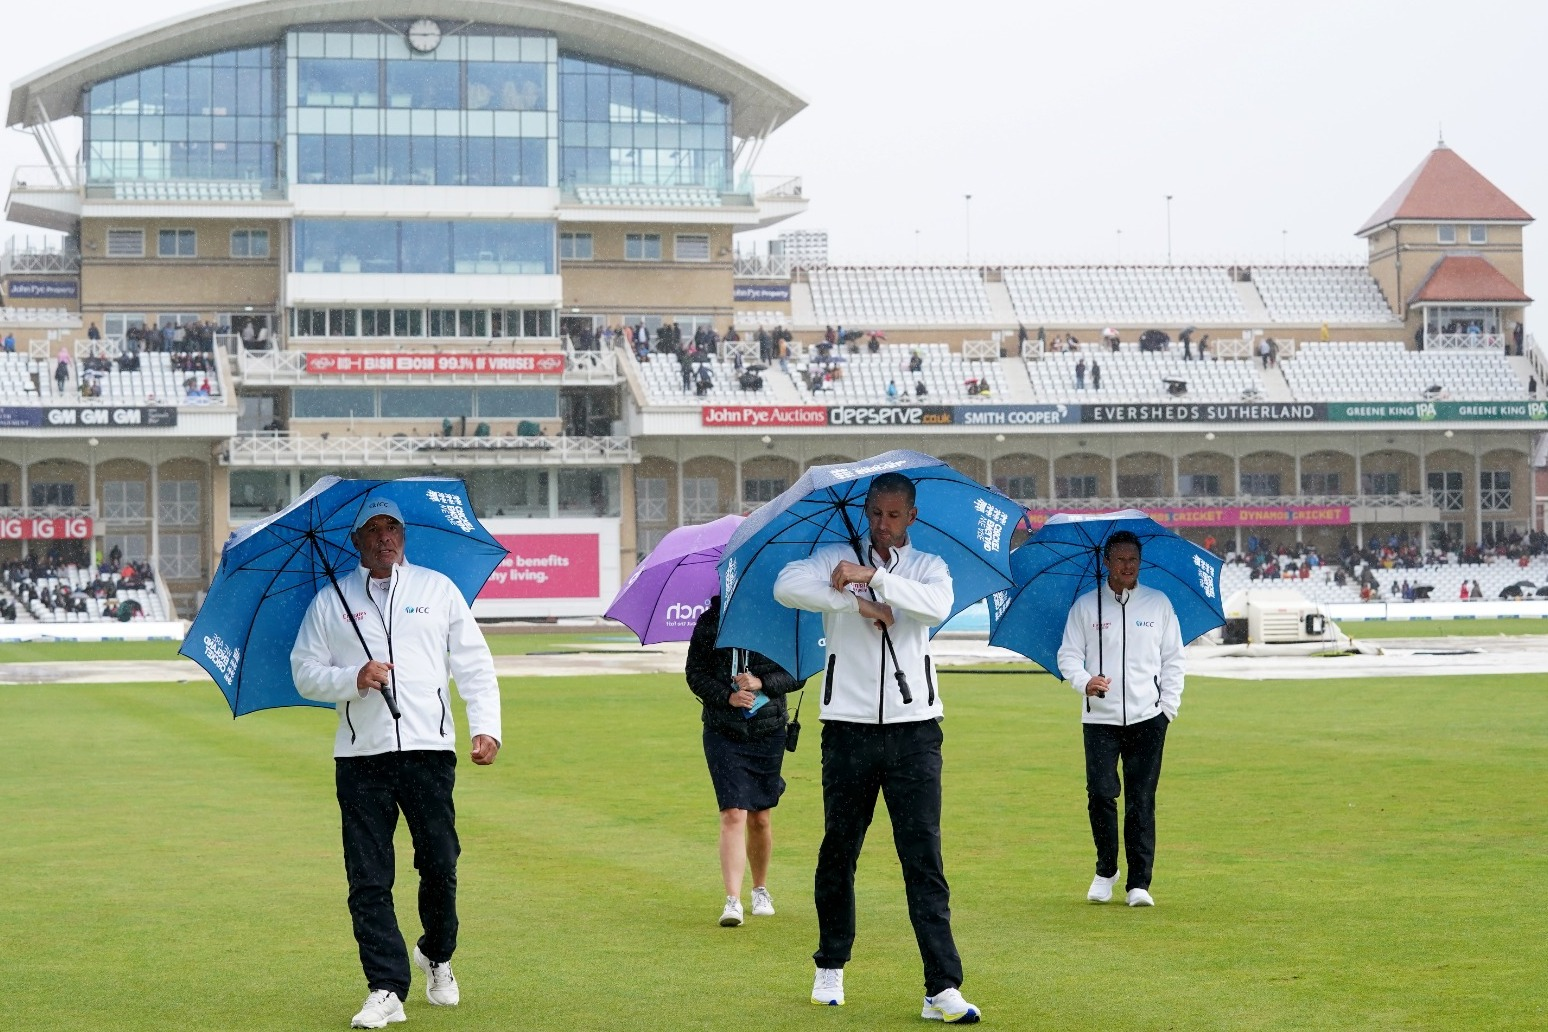 First Test between England and India ends in draw as rain washes out final day.